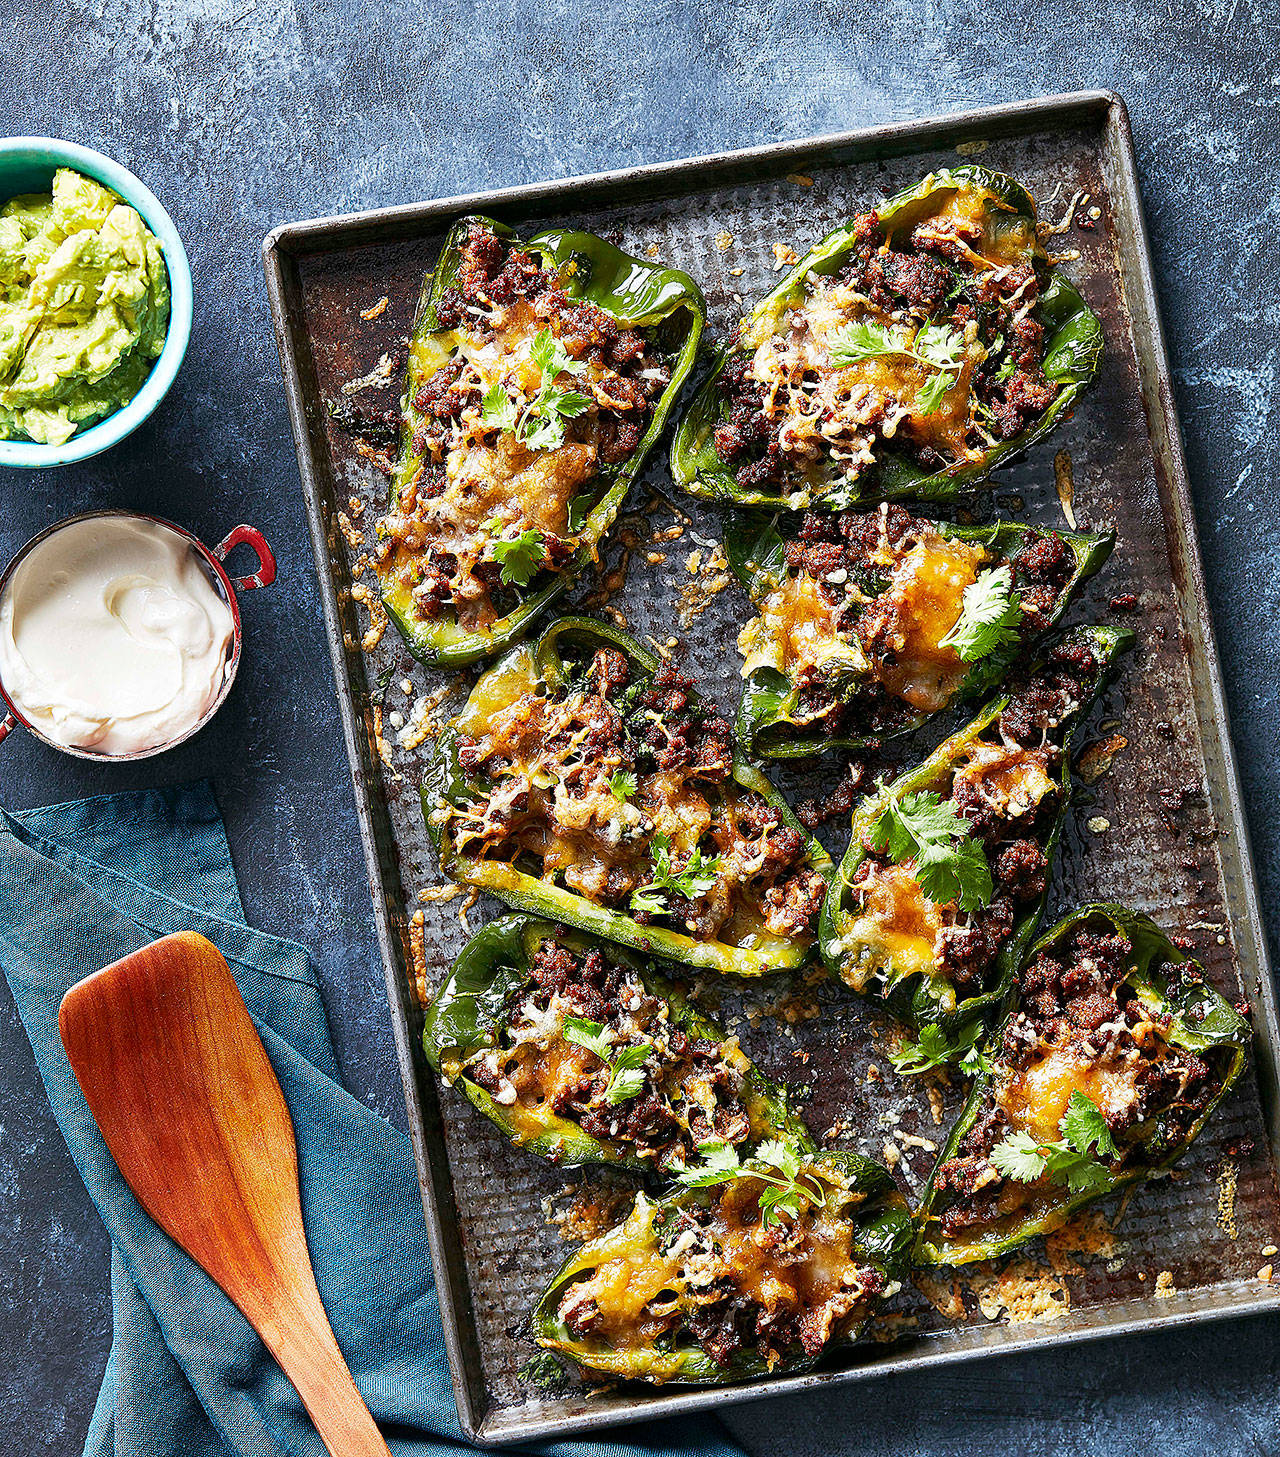 These keto diet-compliant stuffed poblanos take 10 minutes to prep and six minutes to cook. (Houghton Mifflin Harcourt)